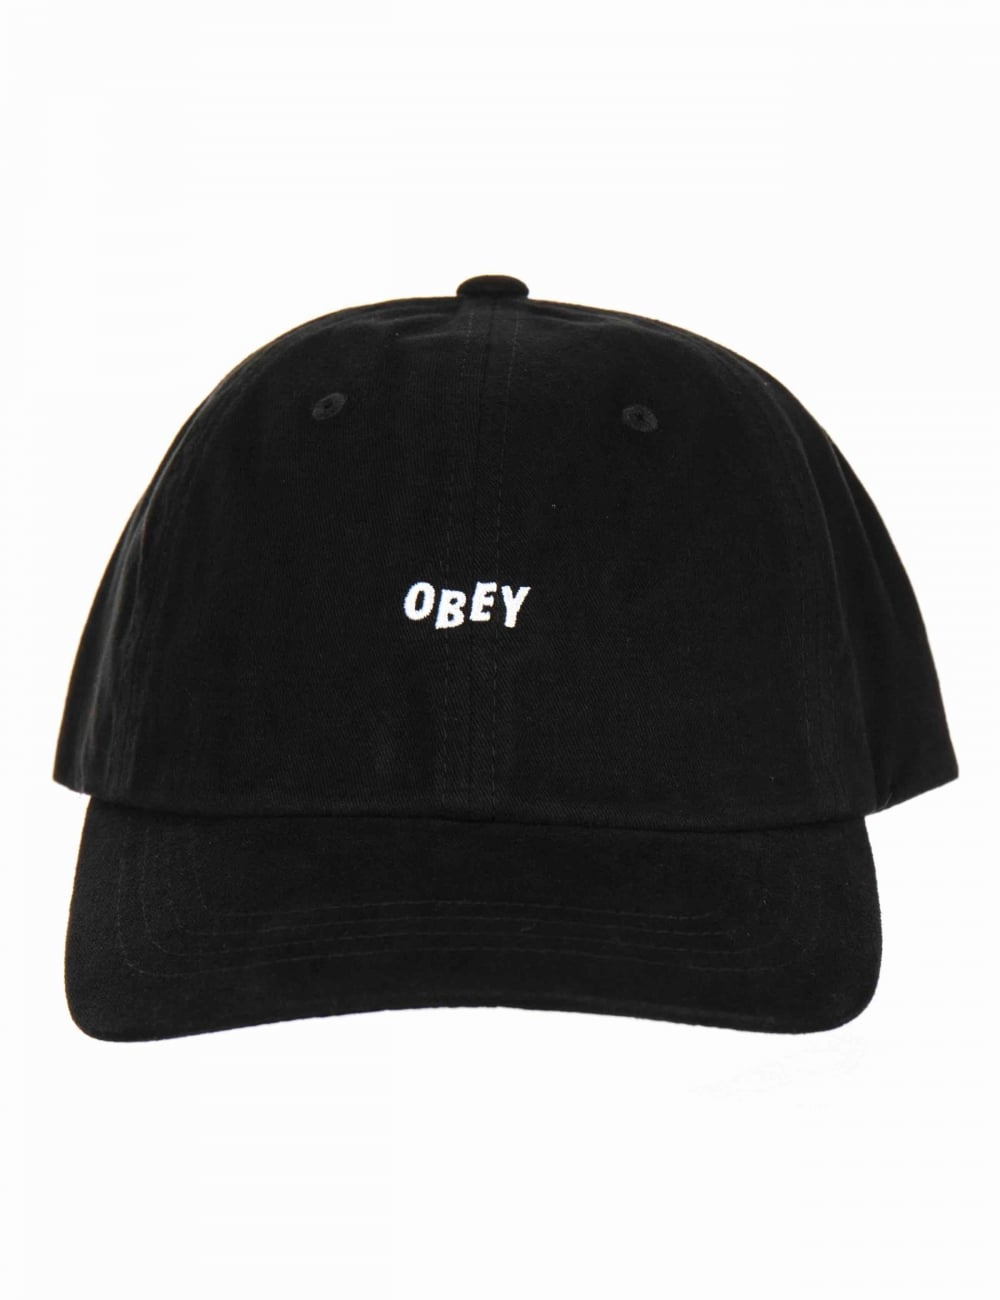 Obey Clothing Jumble Bar III 6 Panel Hat - Black - Hat Shop from Fat ... a41a323770c0